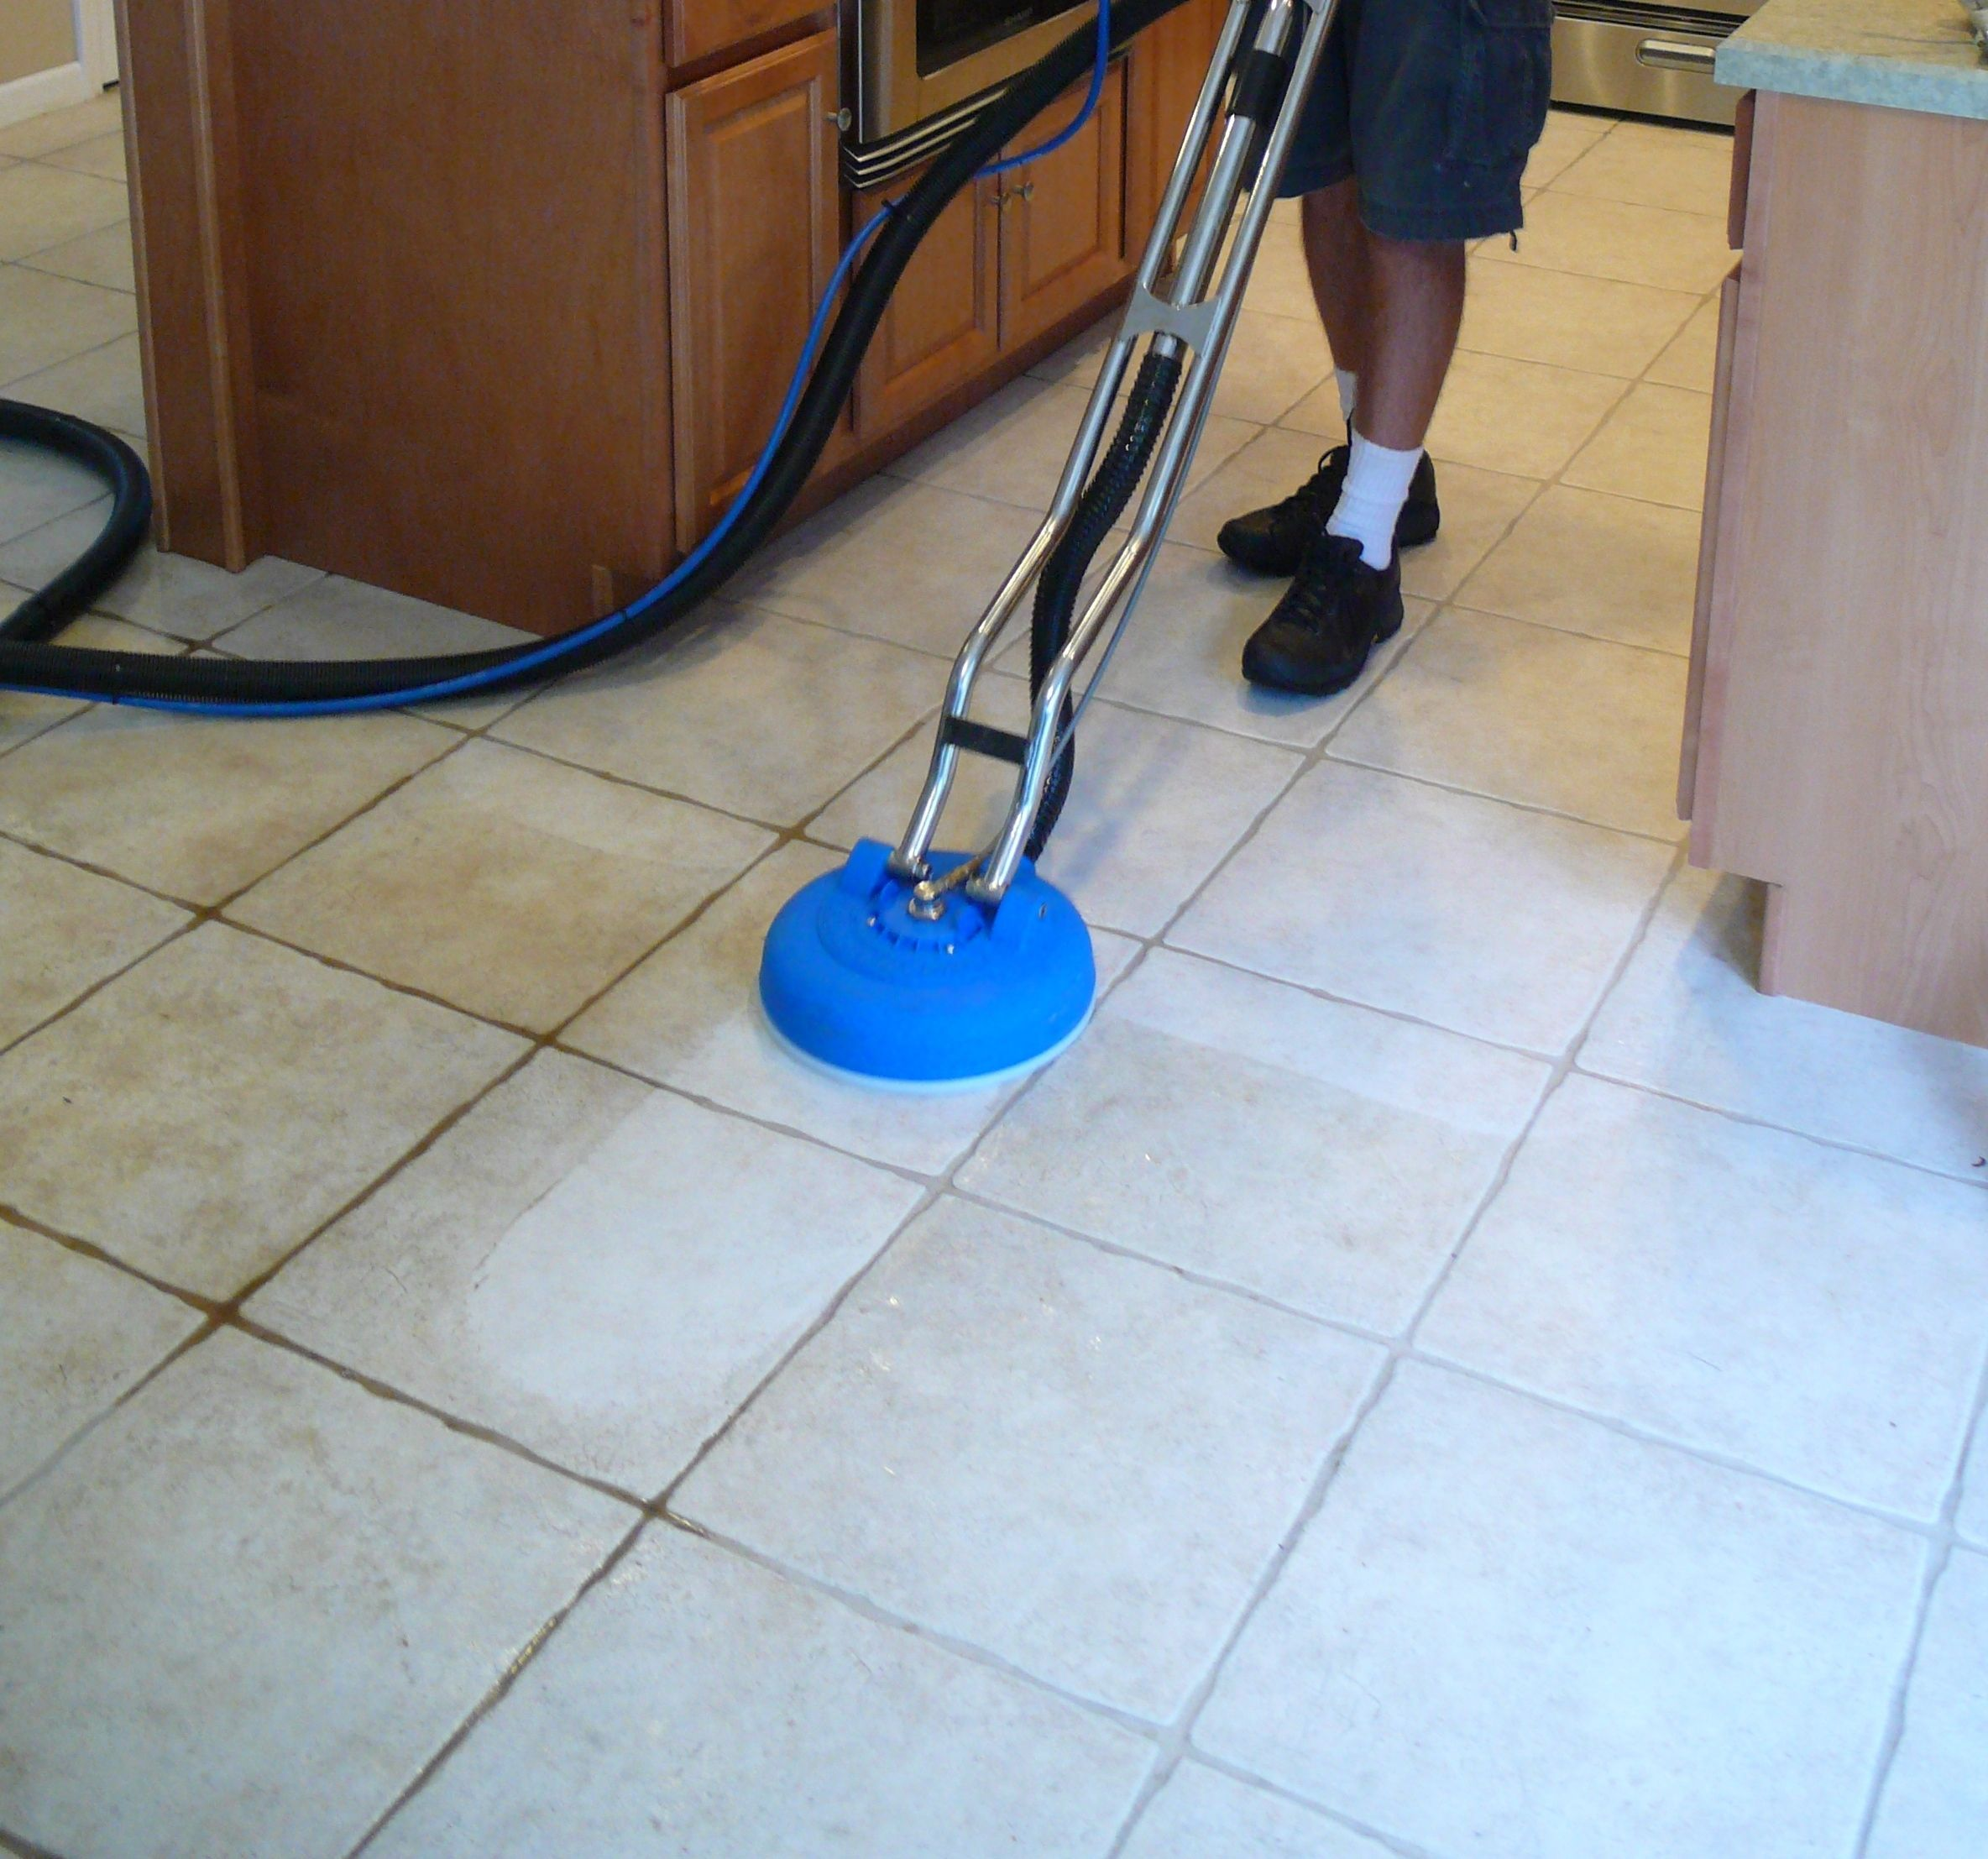 Are Steam Mops Good For Ceramic Tile Floors